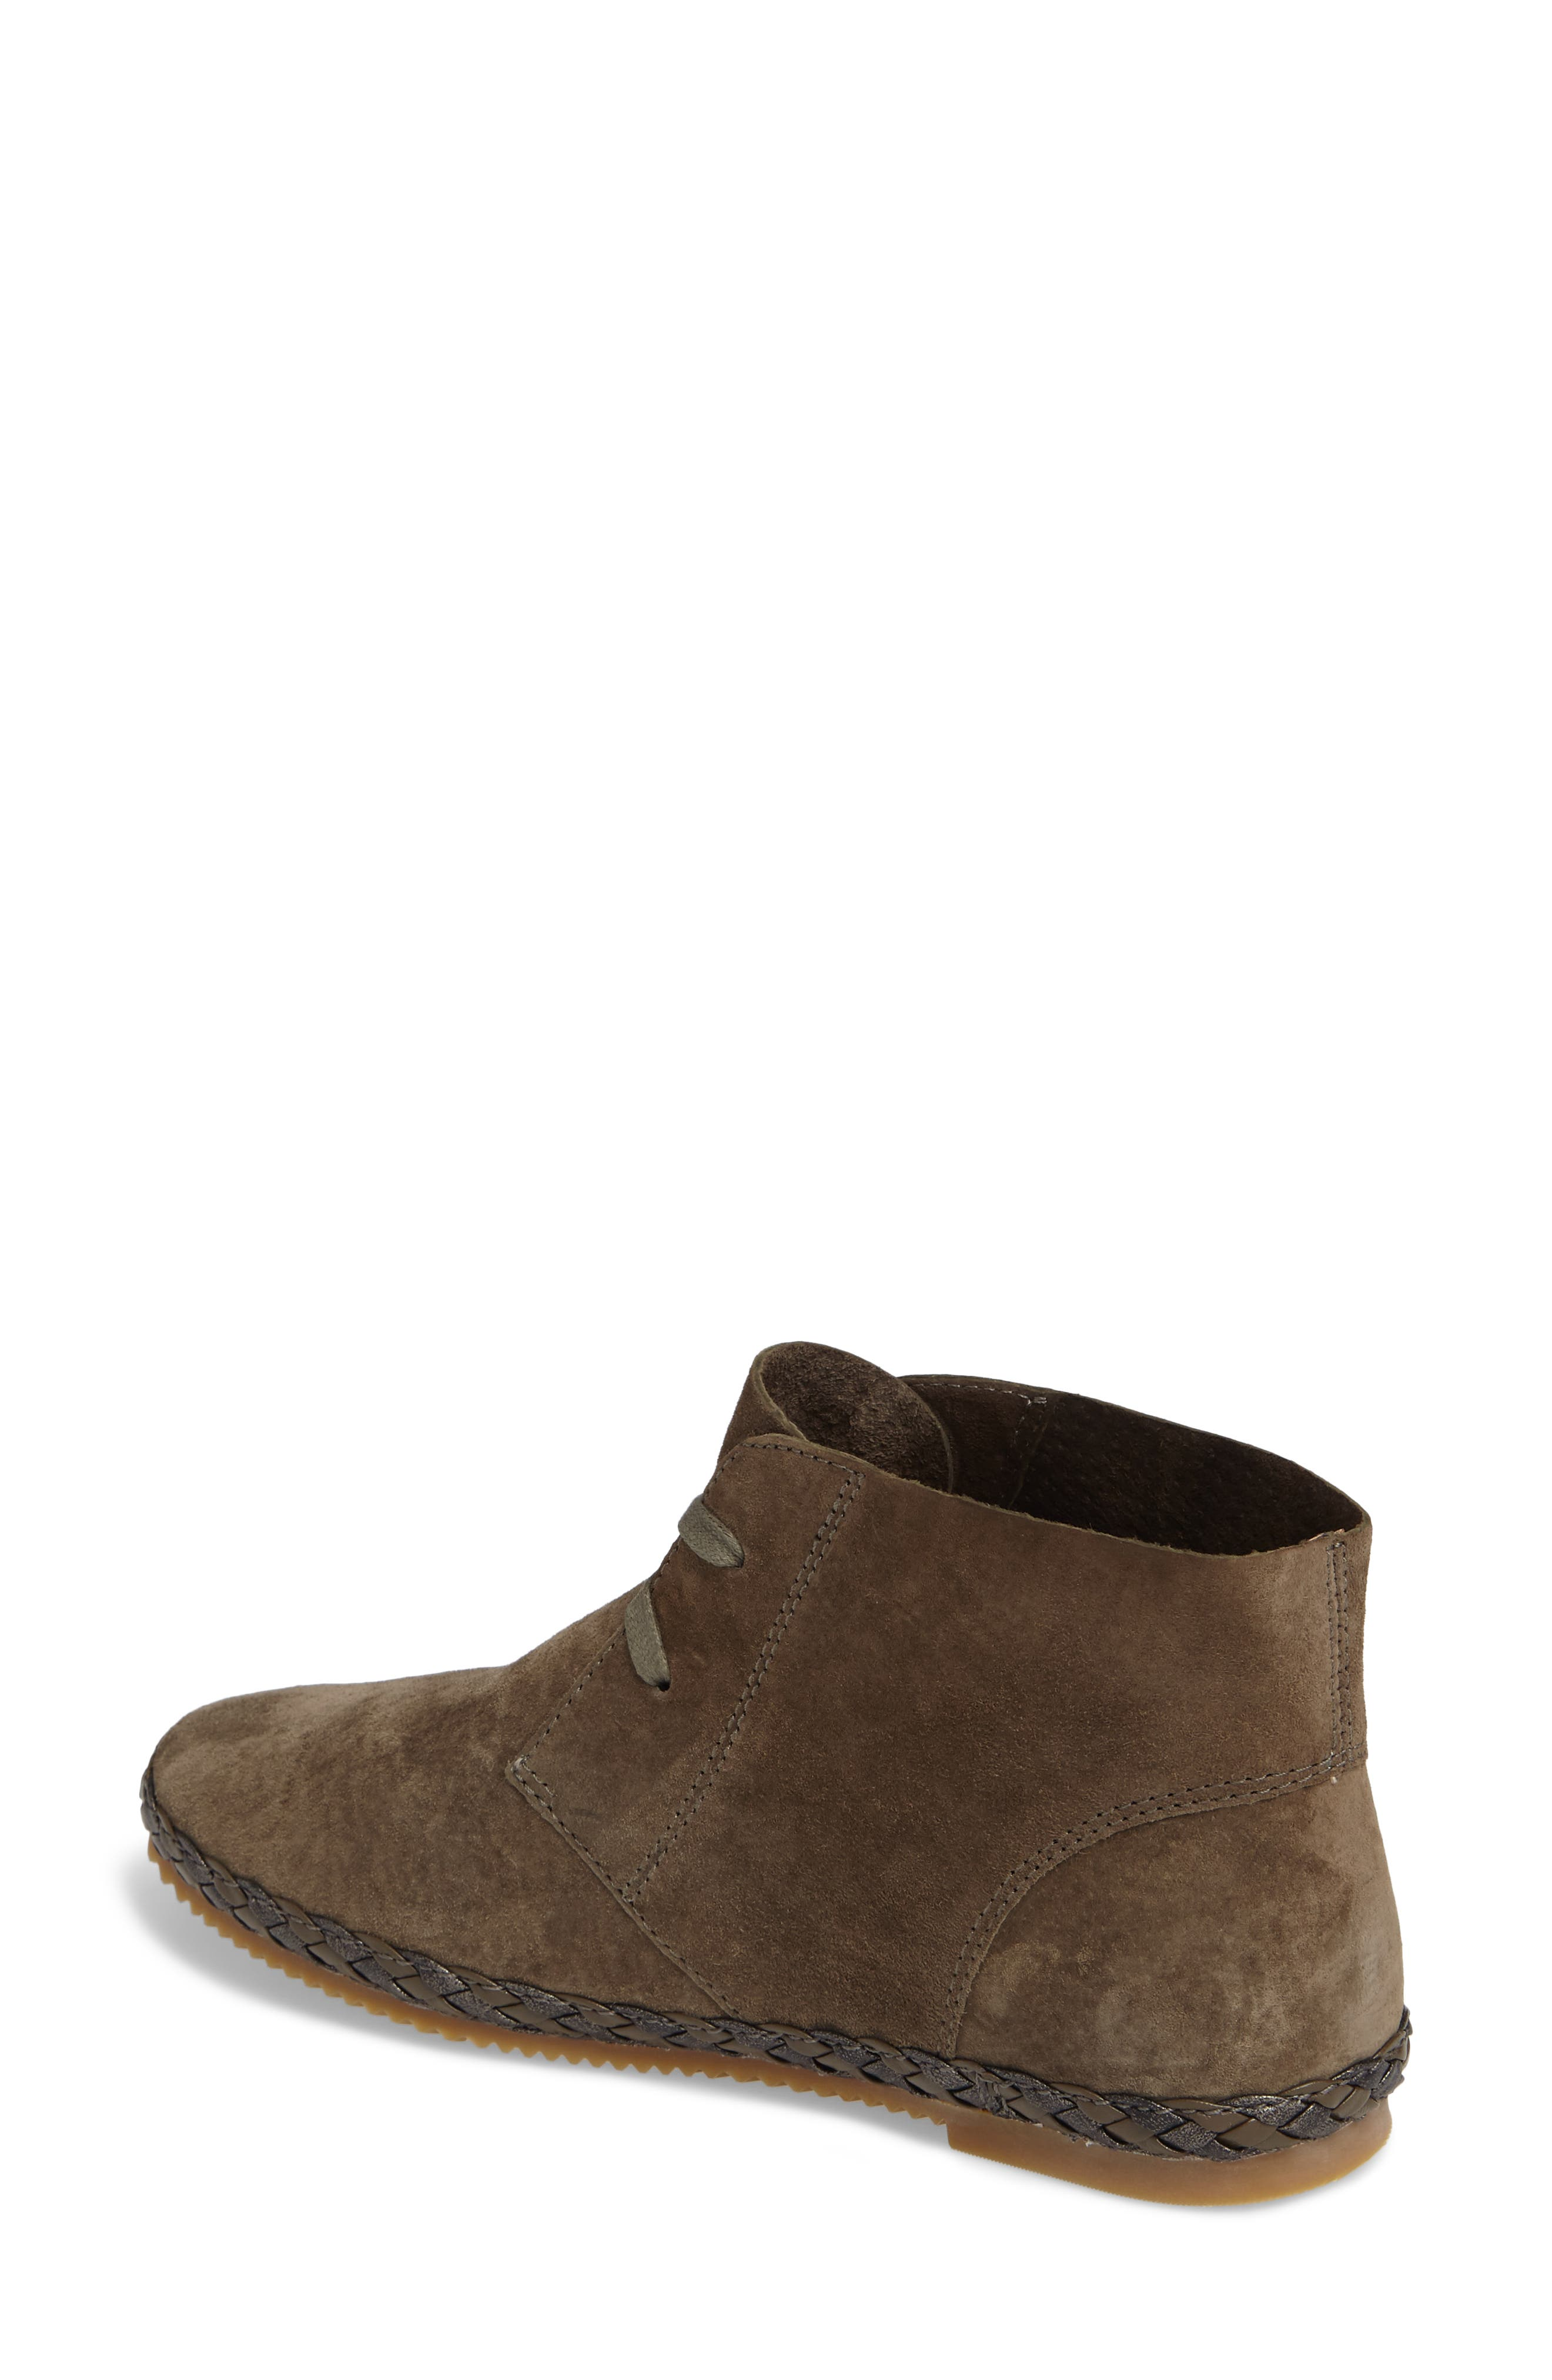 Addison Bootie,                             Alternate thumbnail 2, color,                             Olive Suede